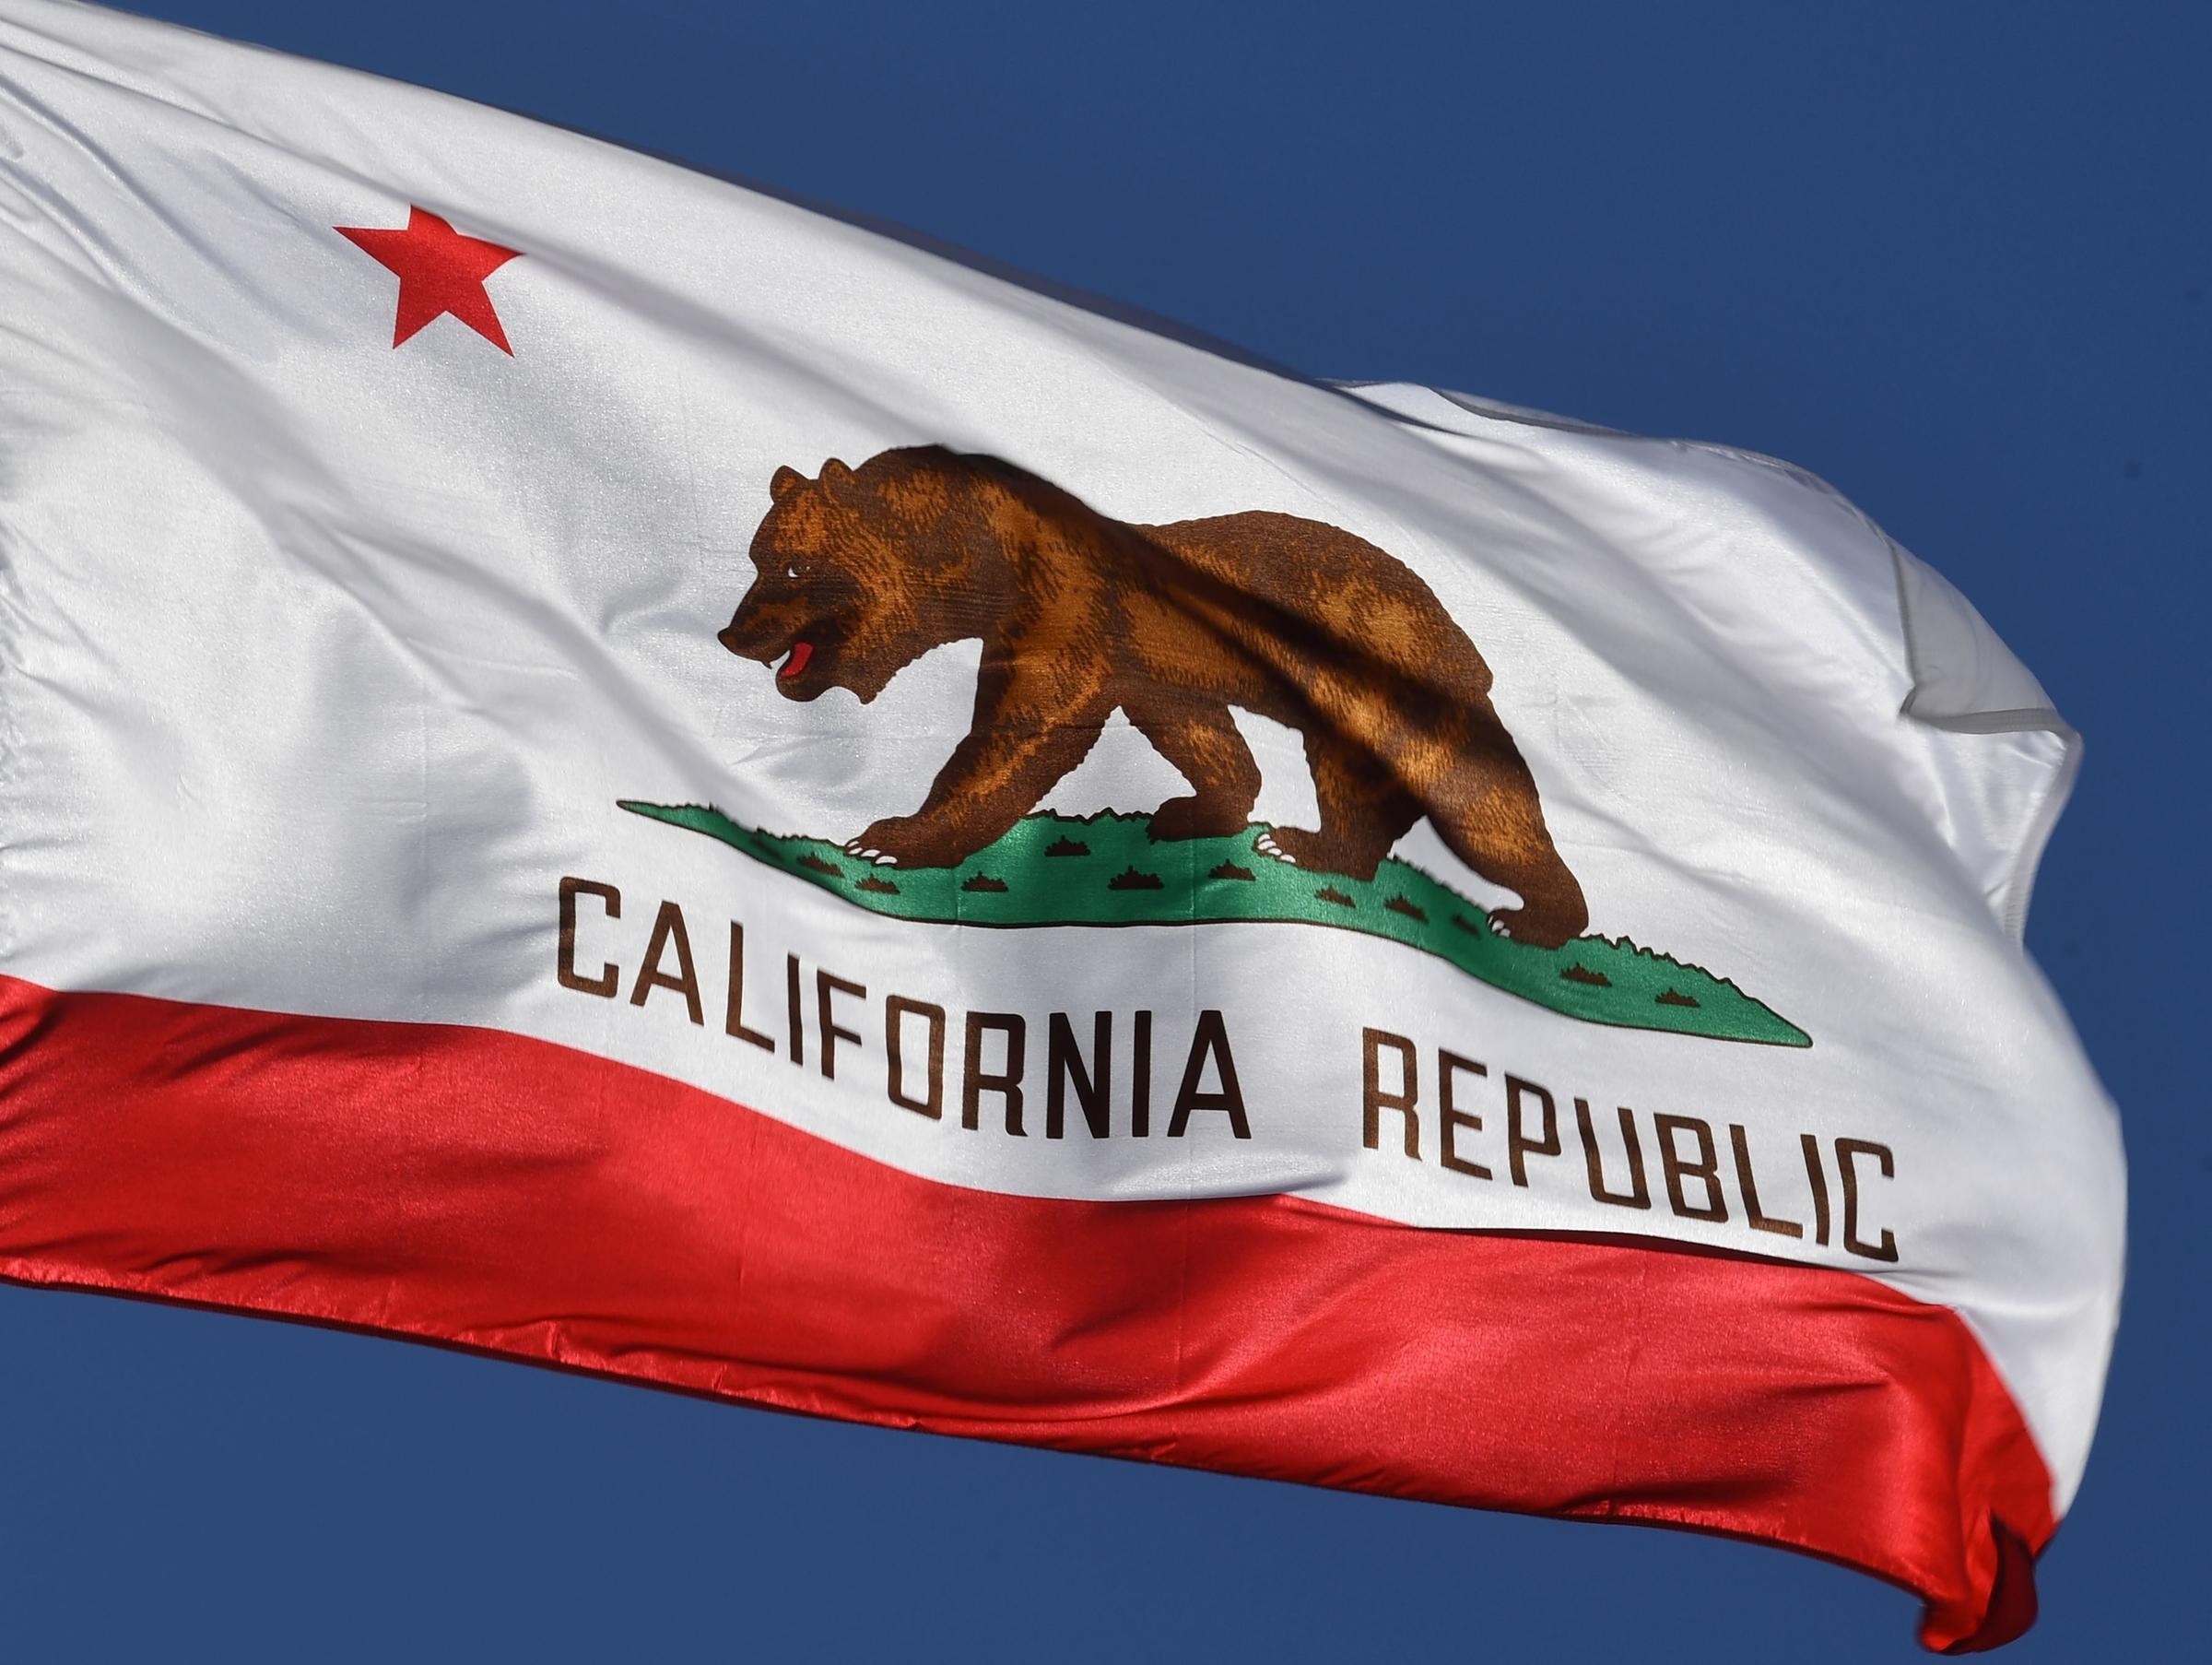 Proposal to divide California into 3 states will be on November ballot